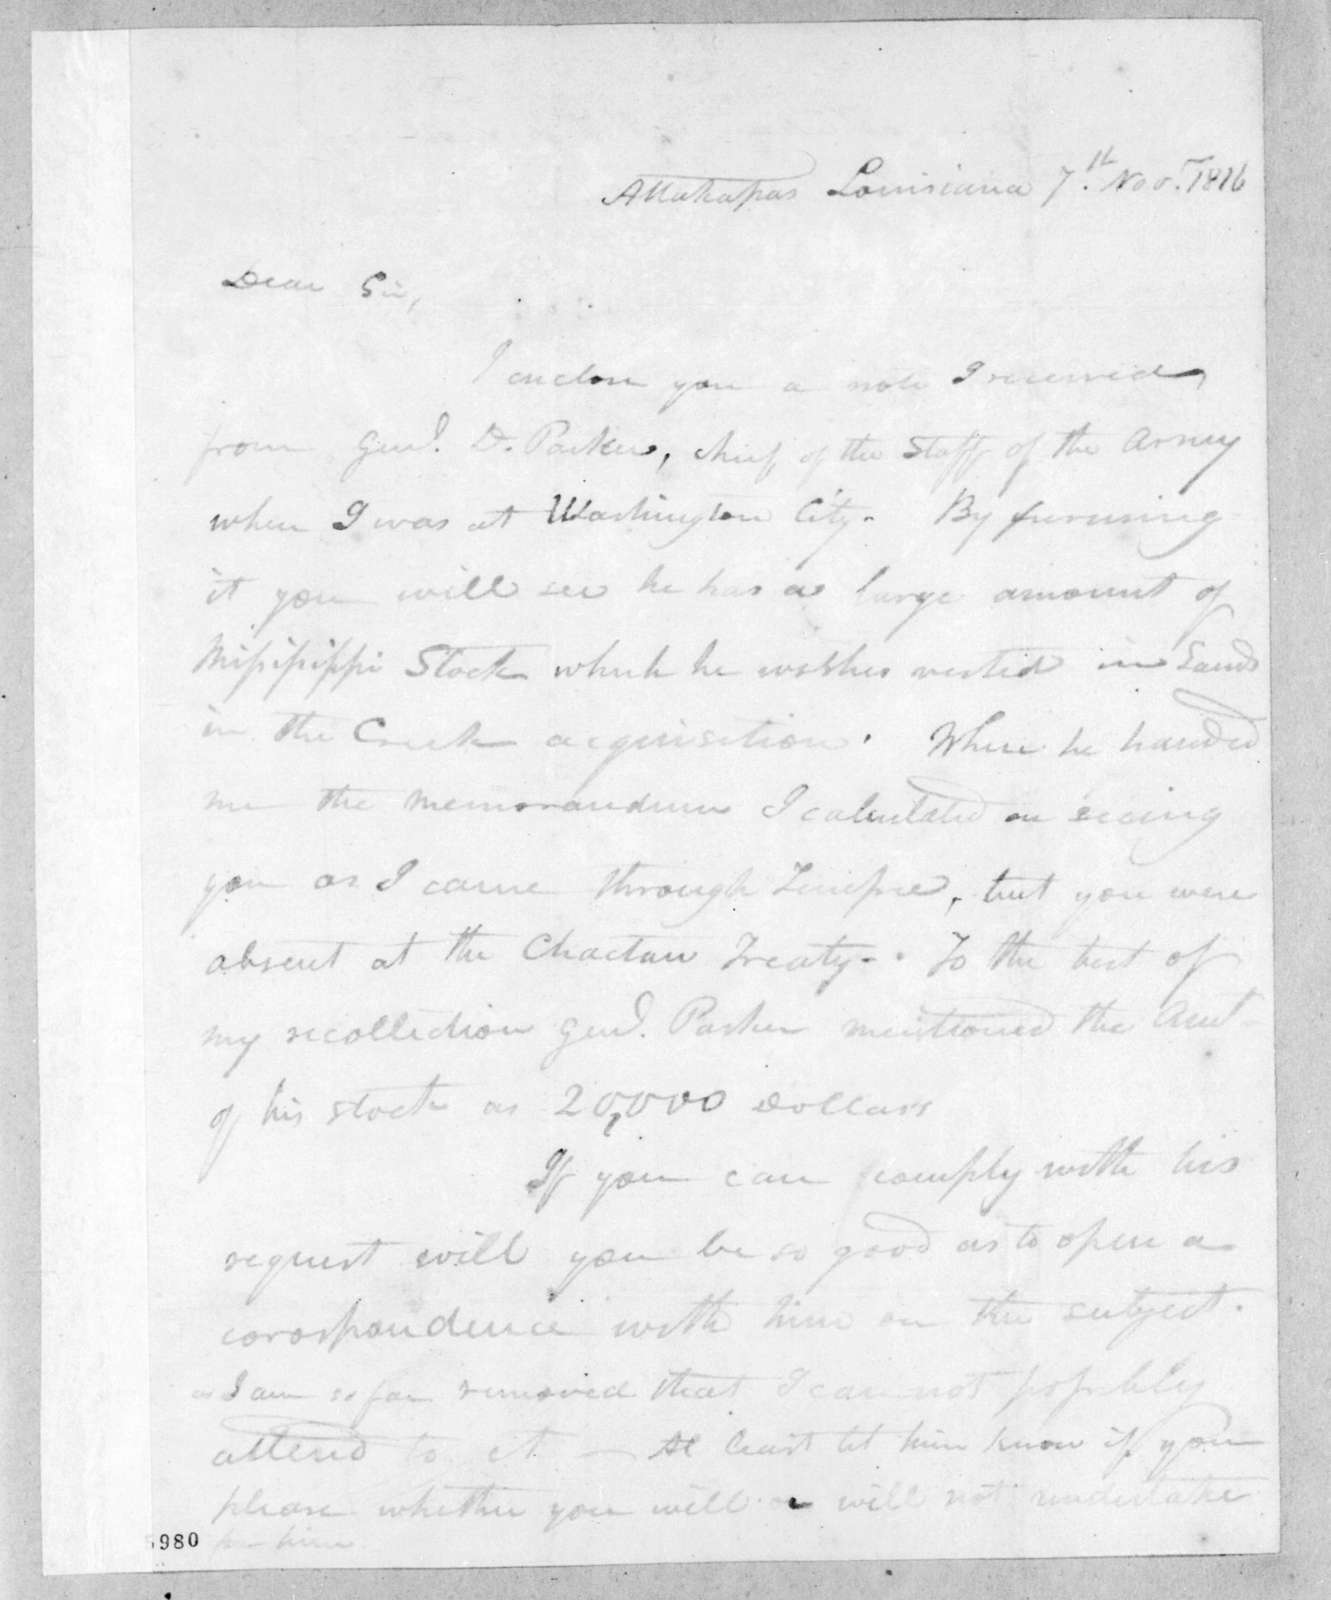 Isaac Lewis Baker to John Coffee, November 7, 1816